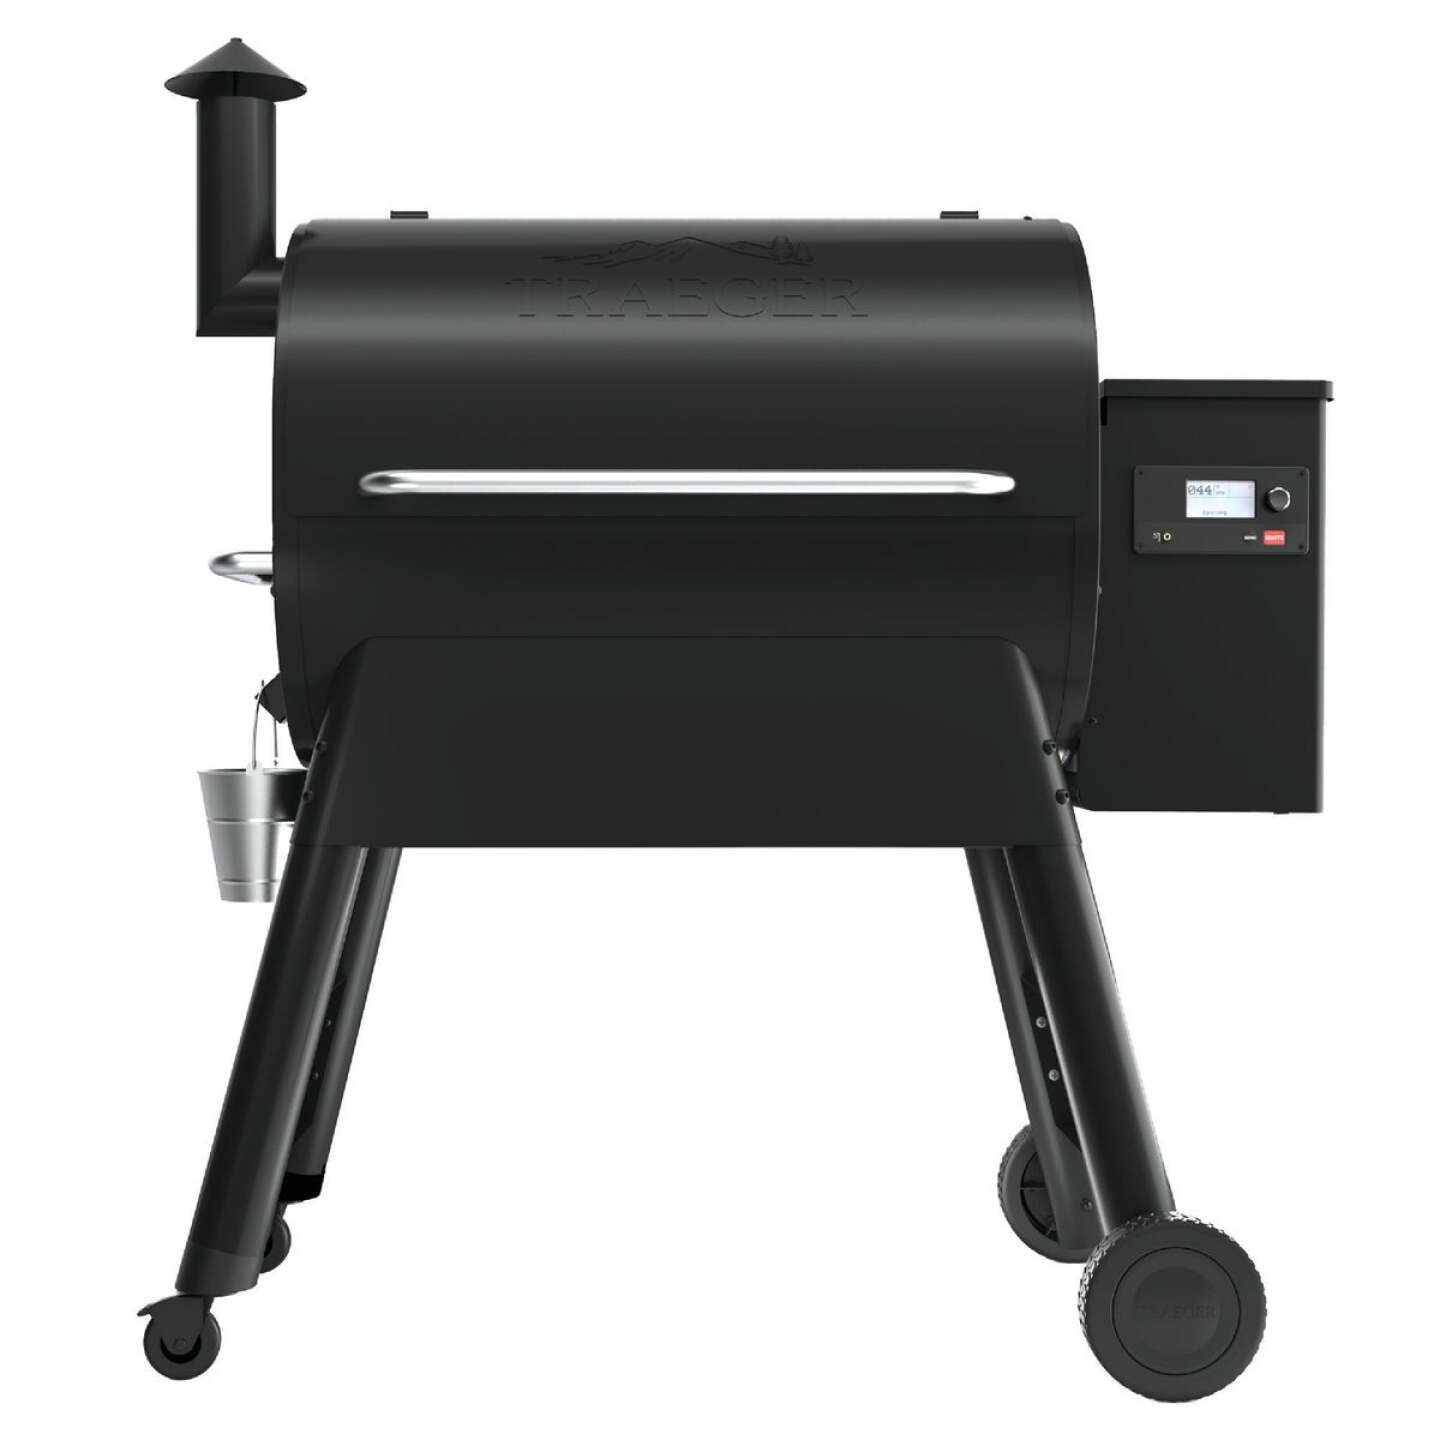 Traeger Pro 780 Black 36,000 BTU 780 Sq. In. Wood Pellet Grill Image 2